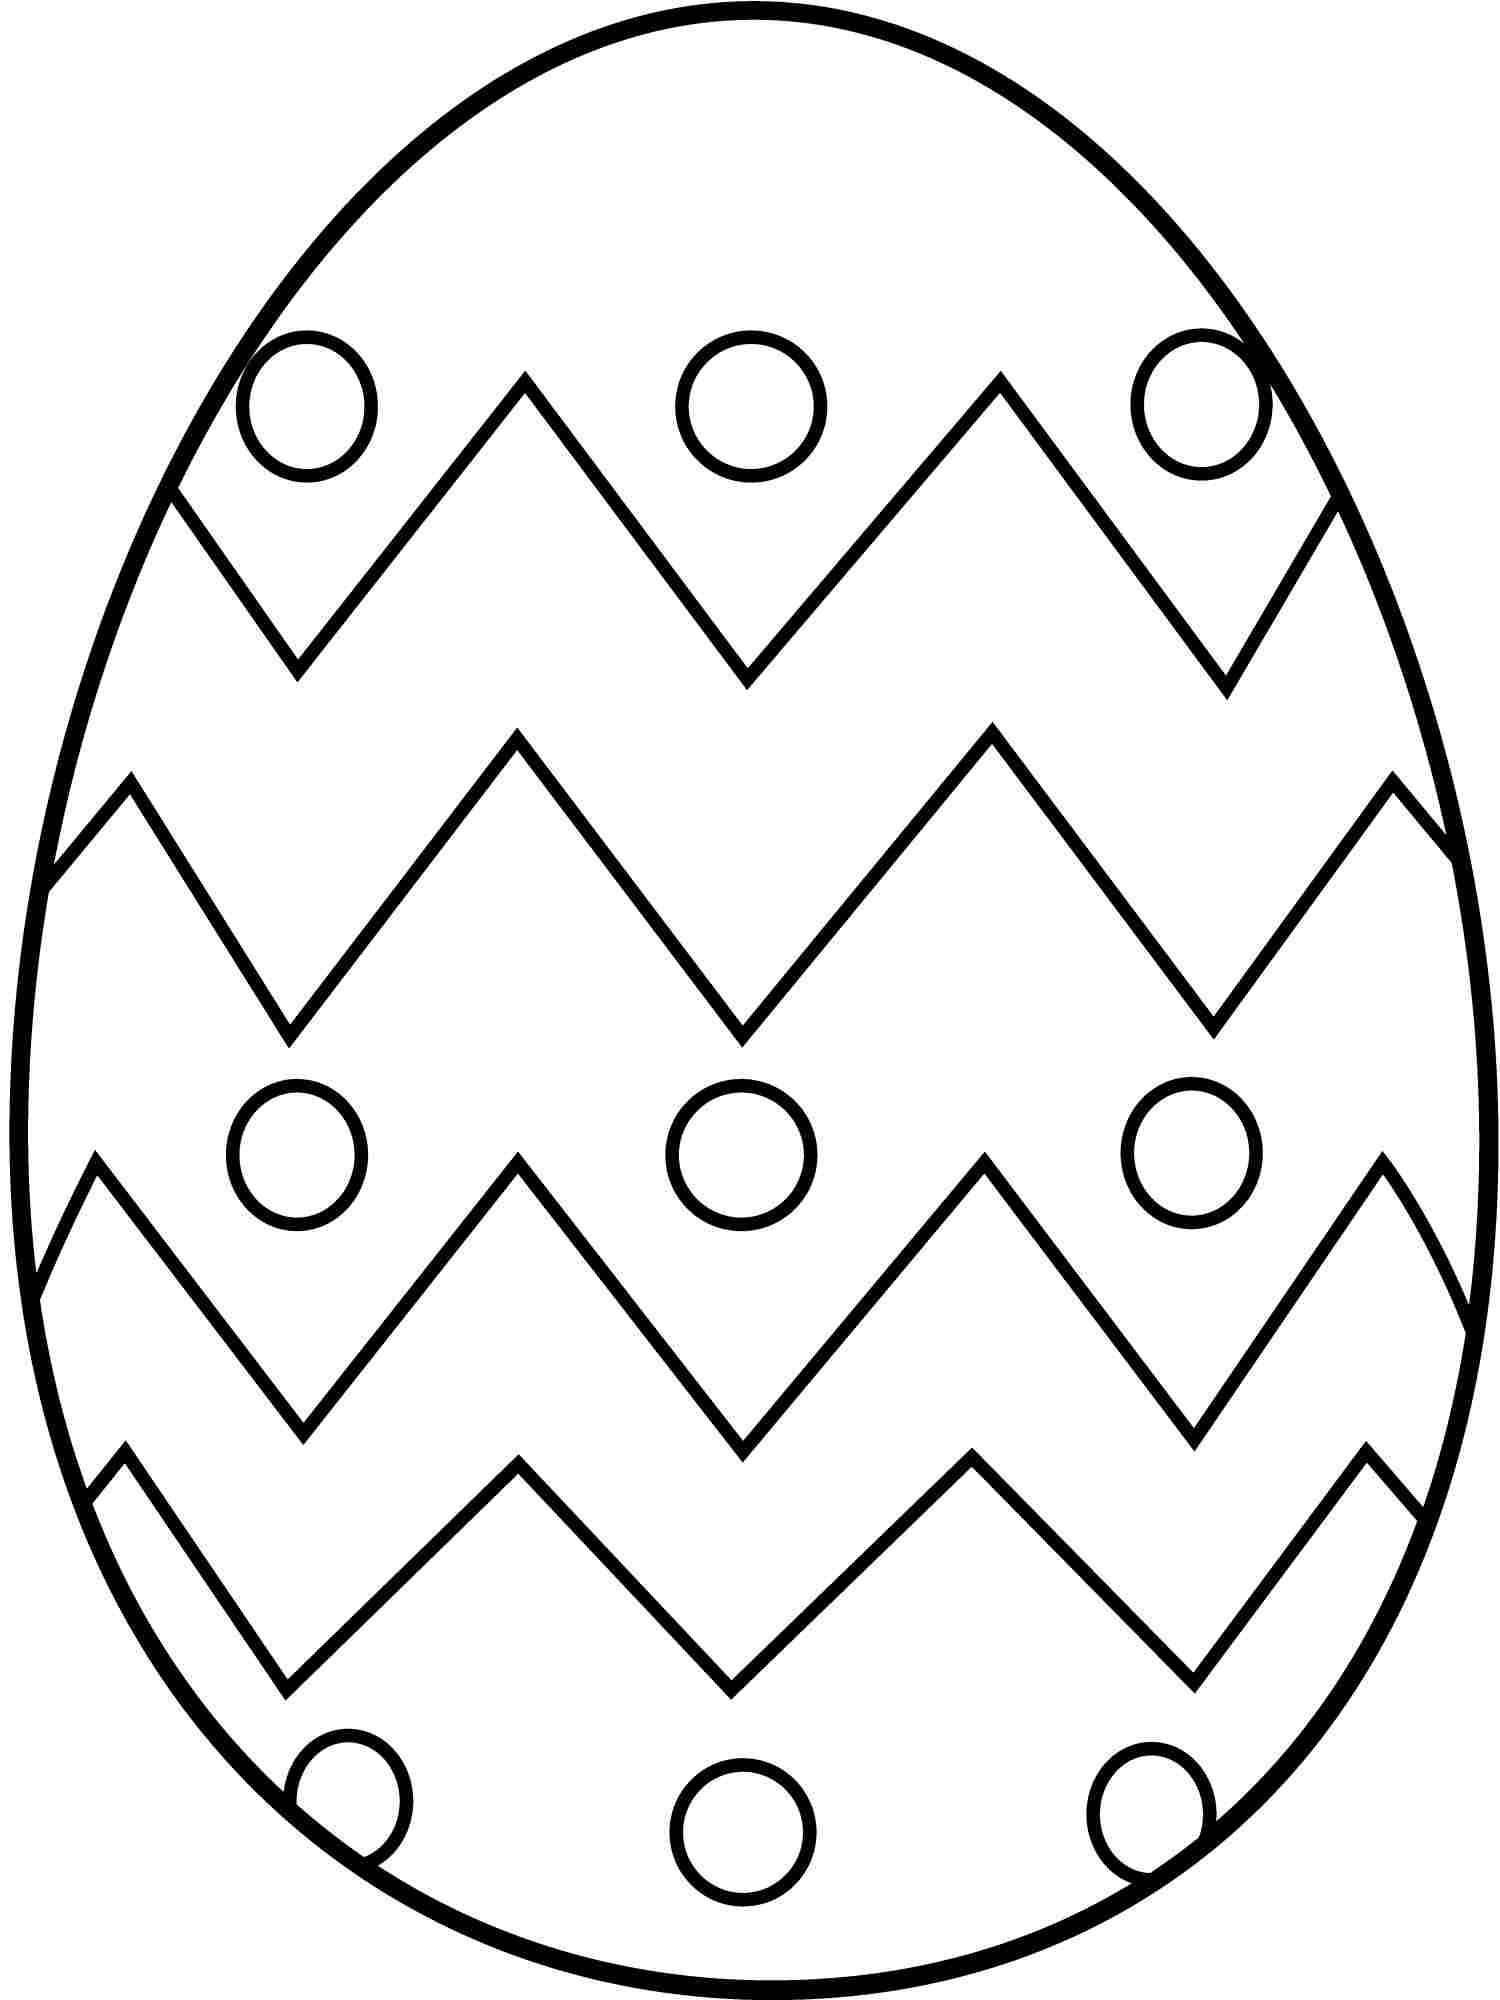 Free Easter Egg Coloring Pages for Kids the Art Jinni Gallery Of Easter Egg Designs Coloring Pages to Print